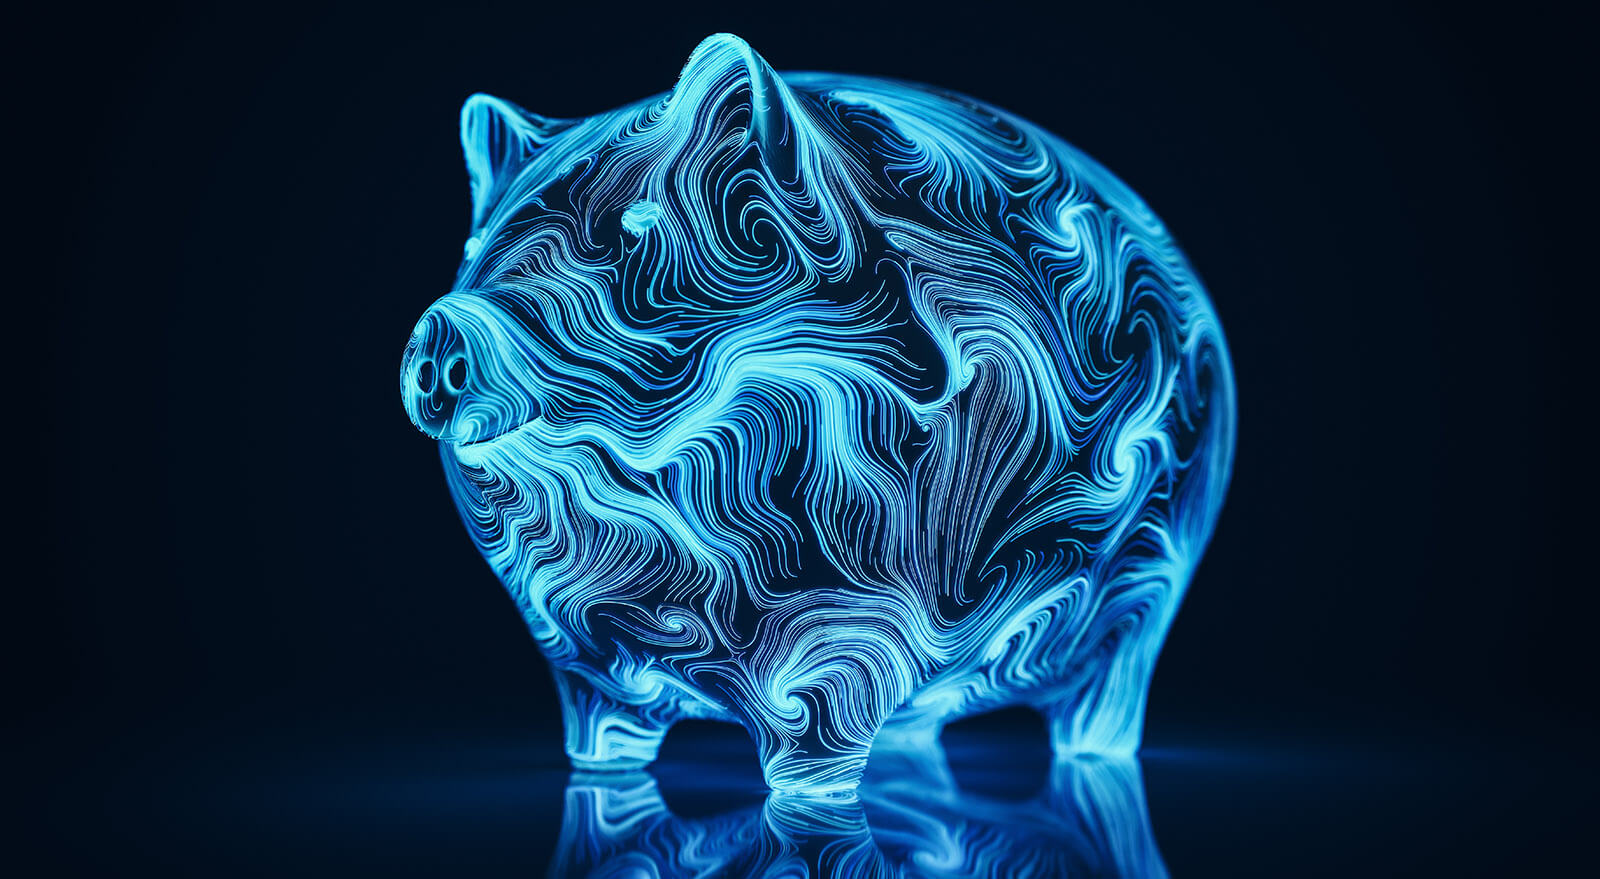 Abstract digital piggy bank